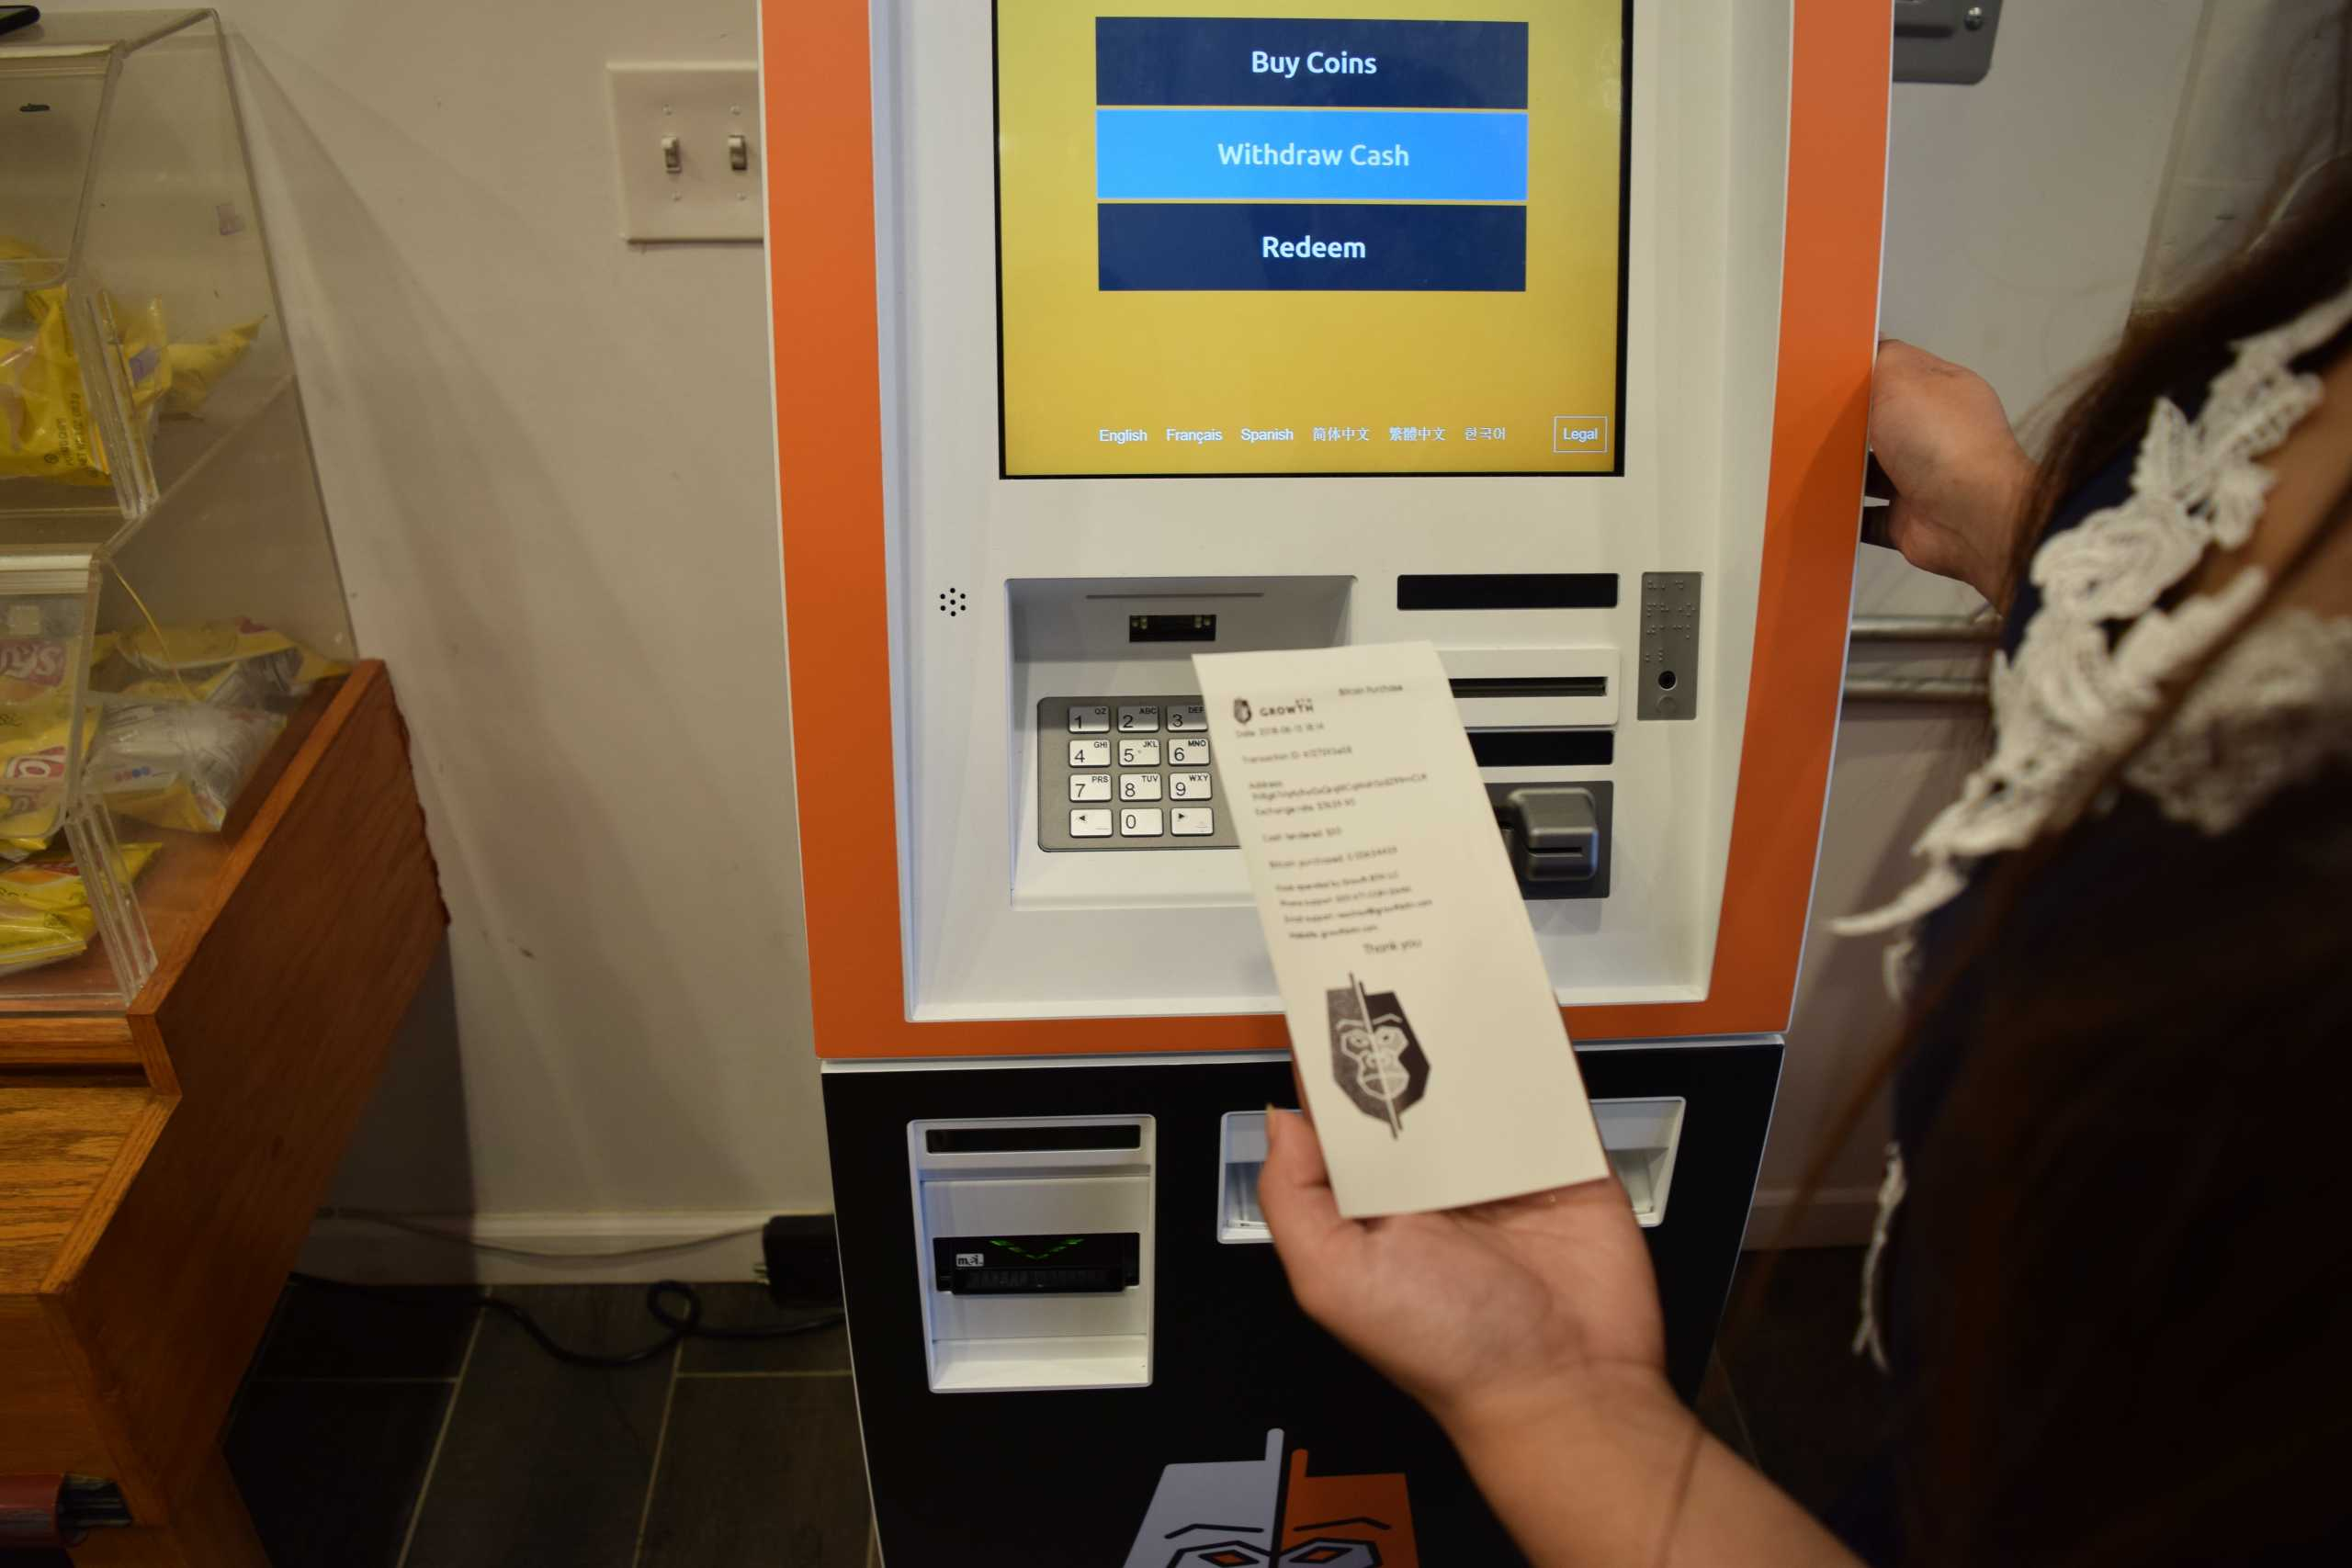 Find out why you should use the Bitcoin ATM near me